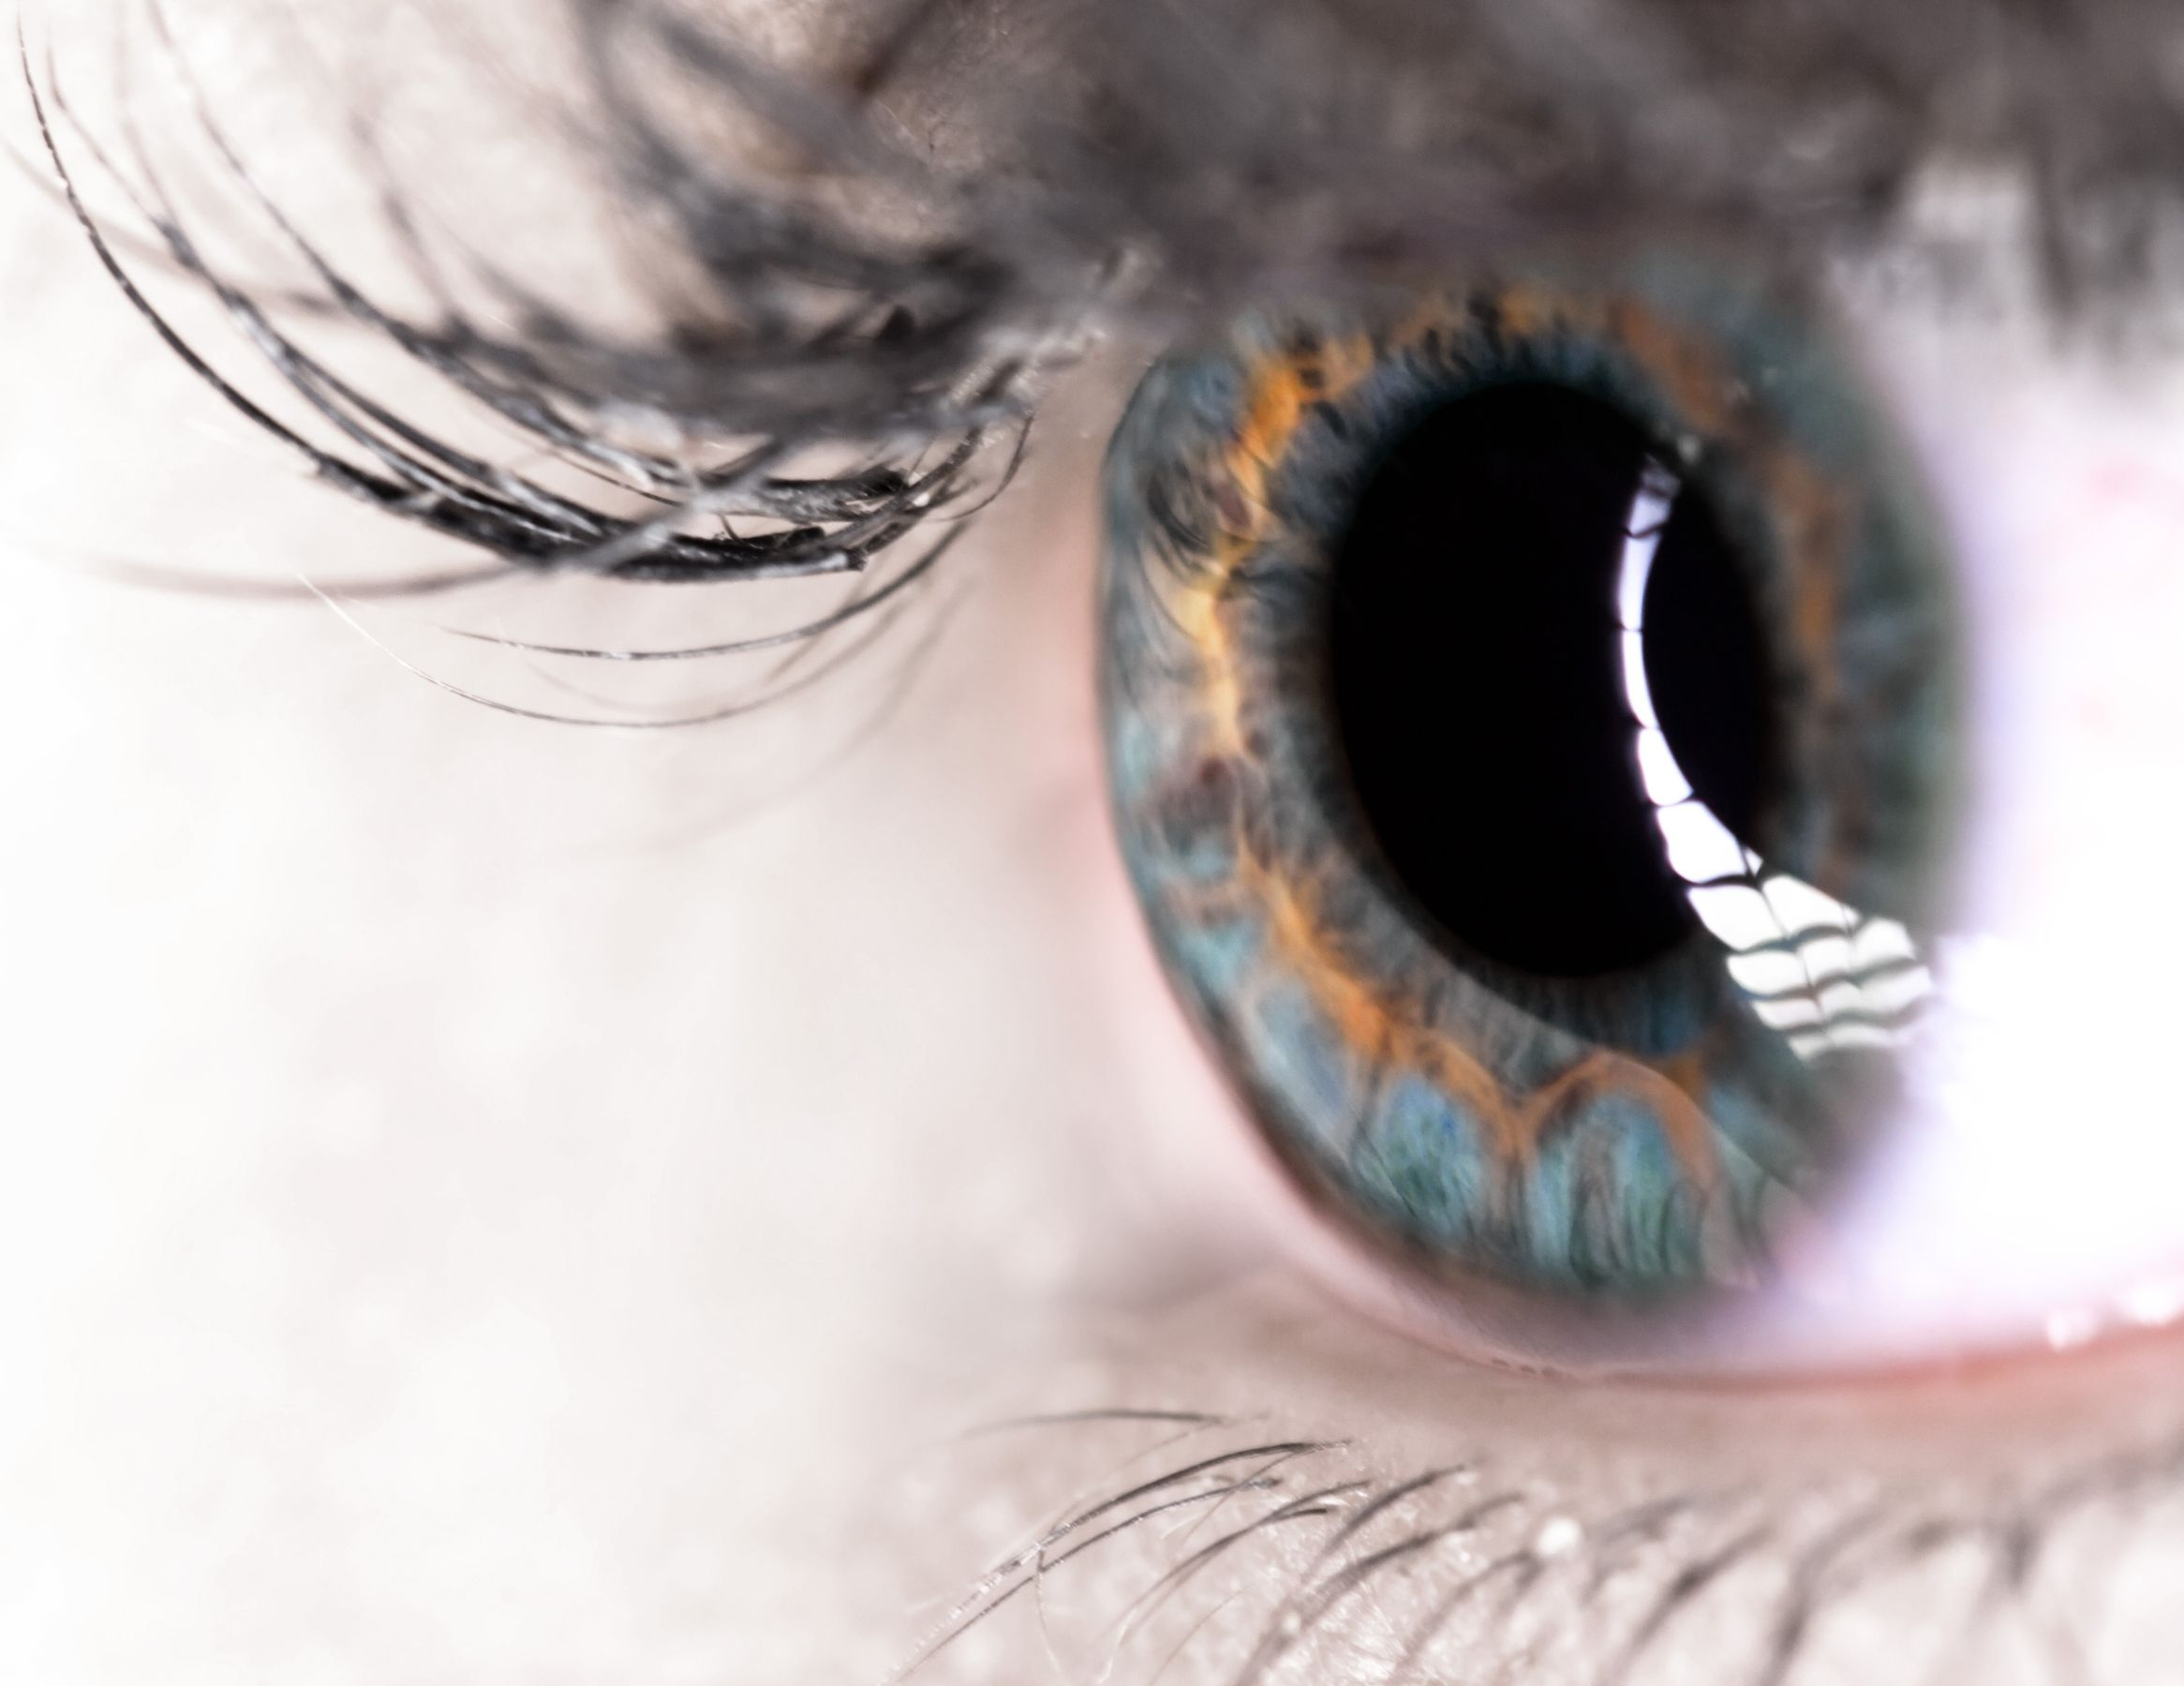 close-up of eye: glaucoma tips